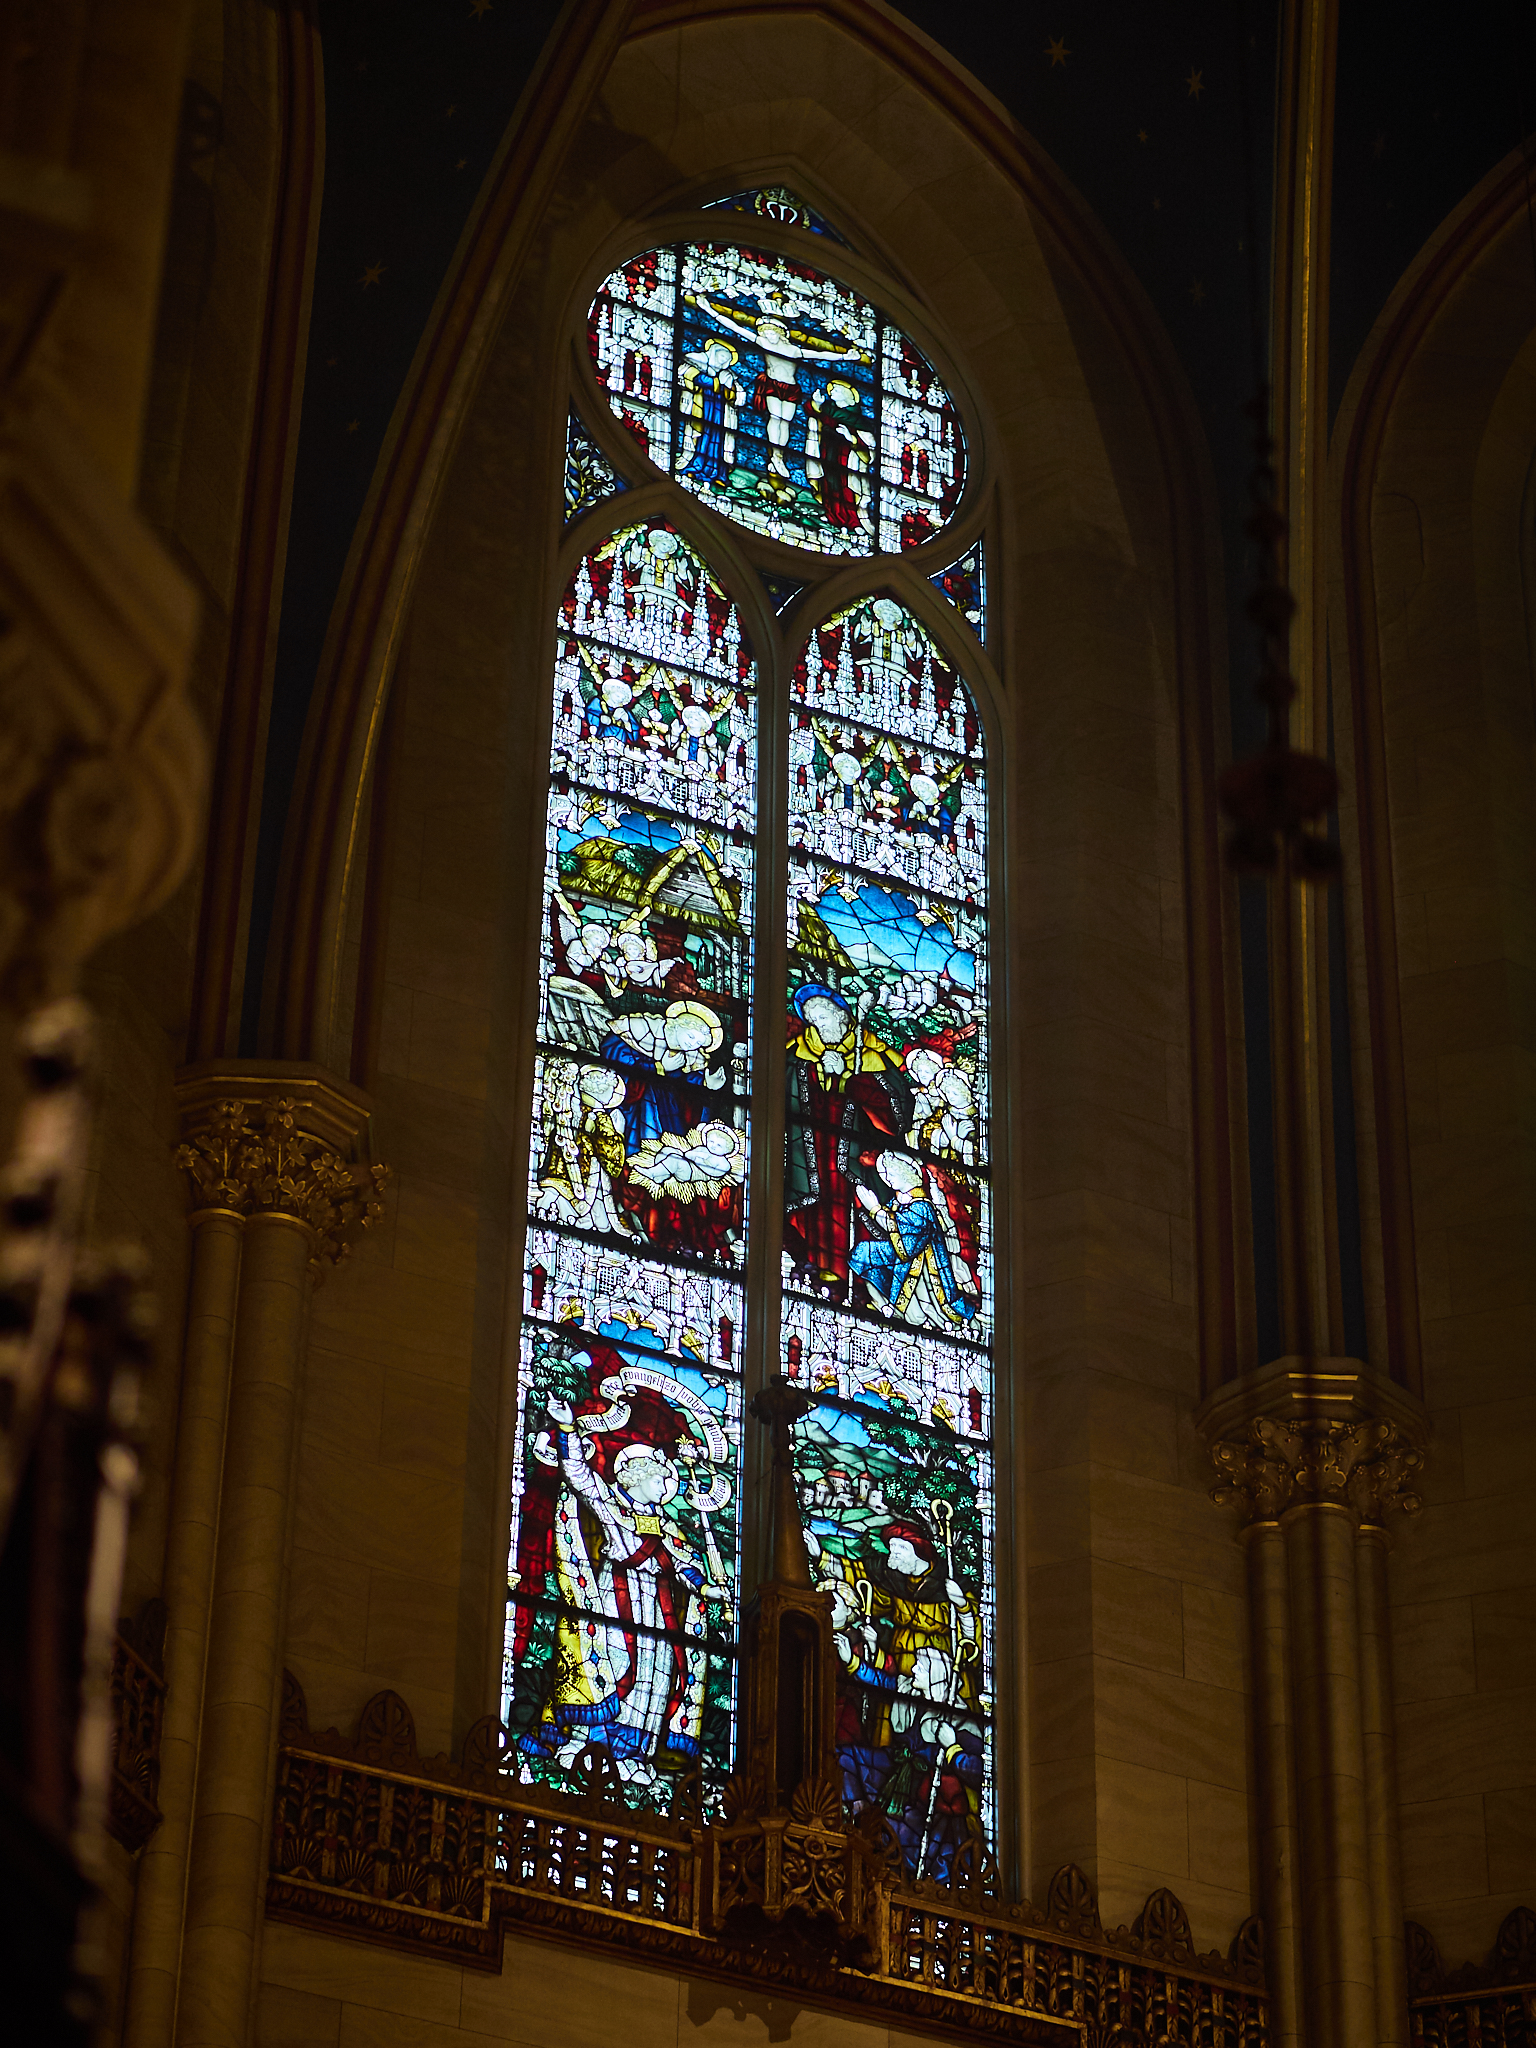 Central double-lancet window in apse: Roundel at top: The Crucifixion; Center:Adoration of the Shepherds; Bottom: Angel Appears to Shepherds  Photo by Ricardo Gomez